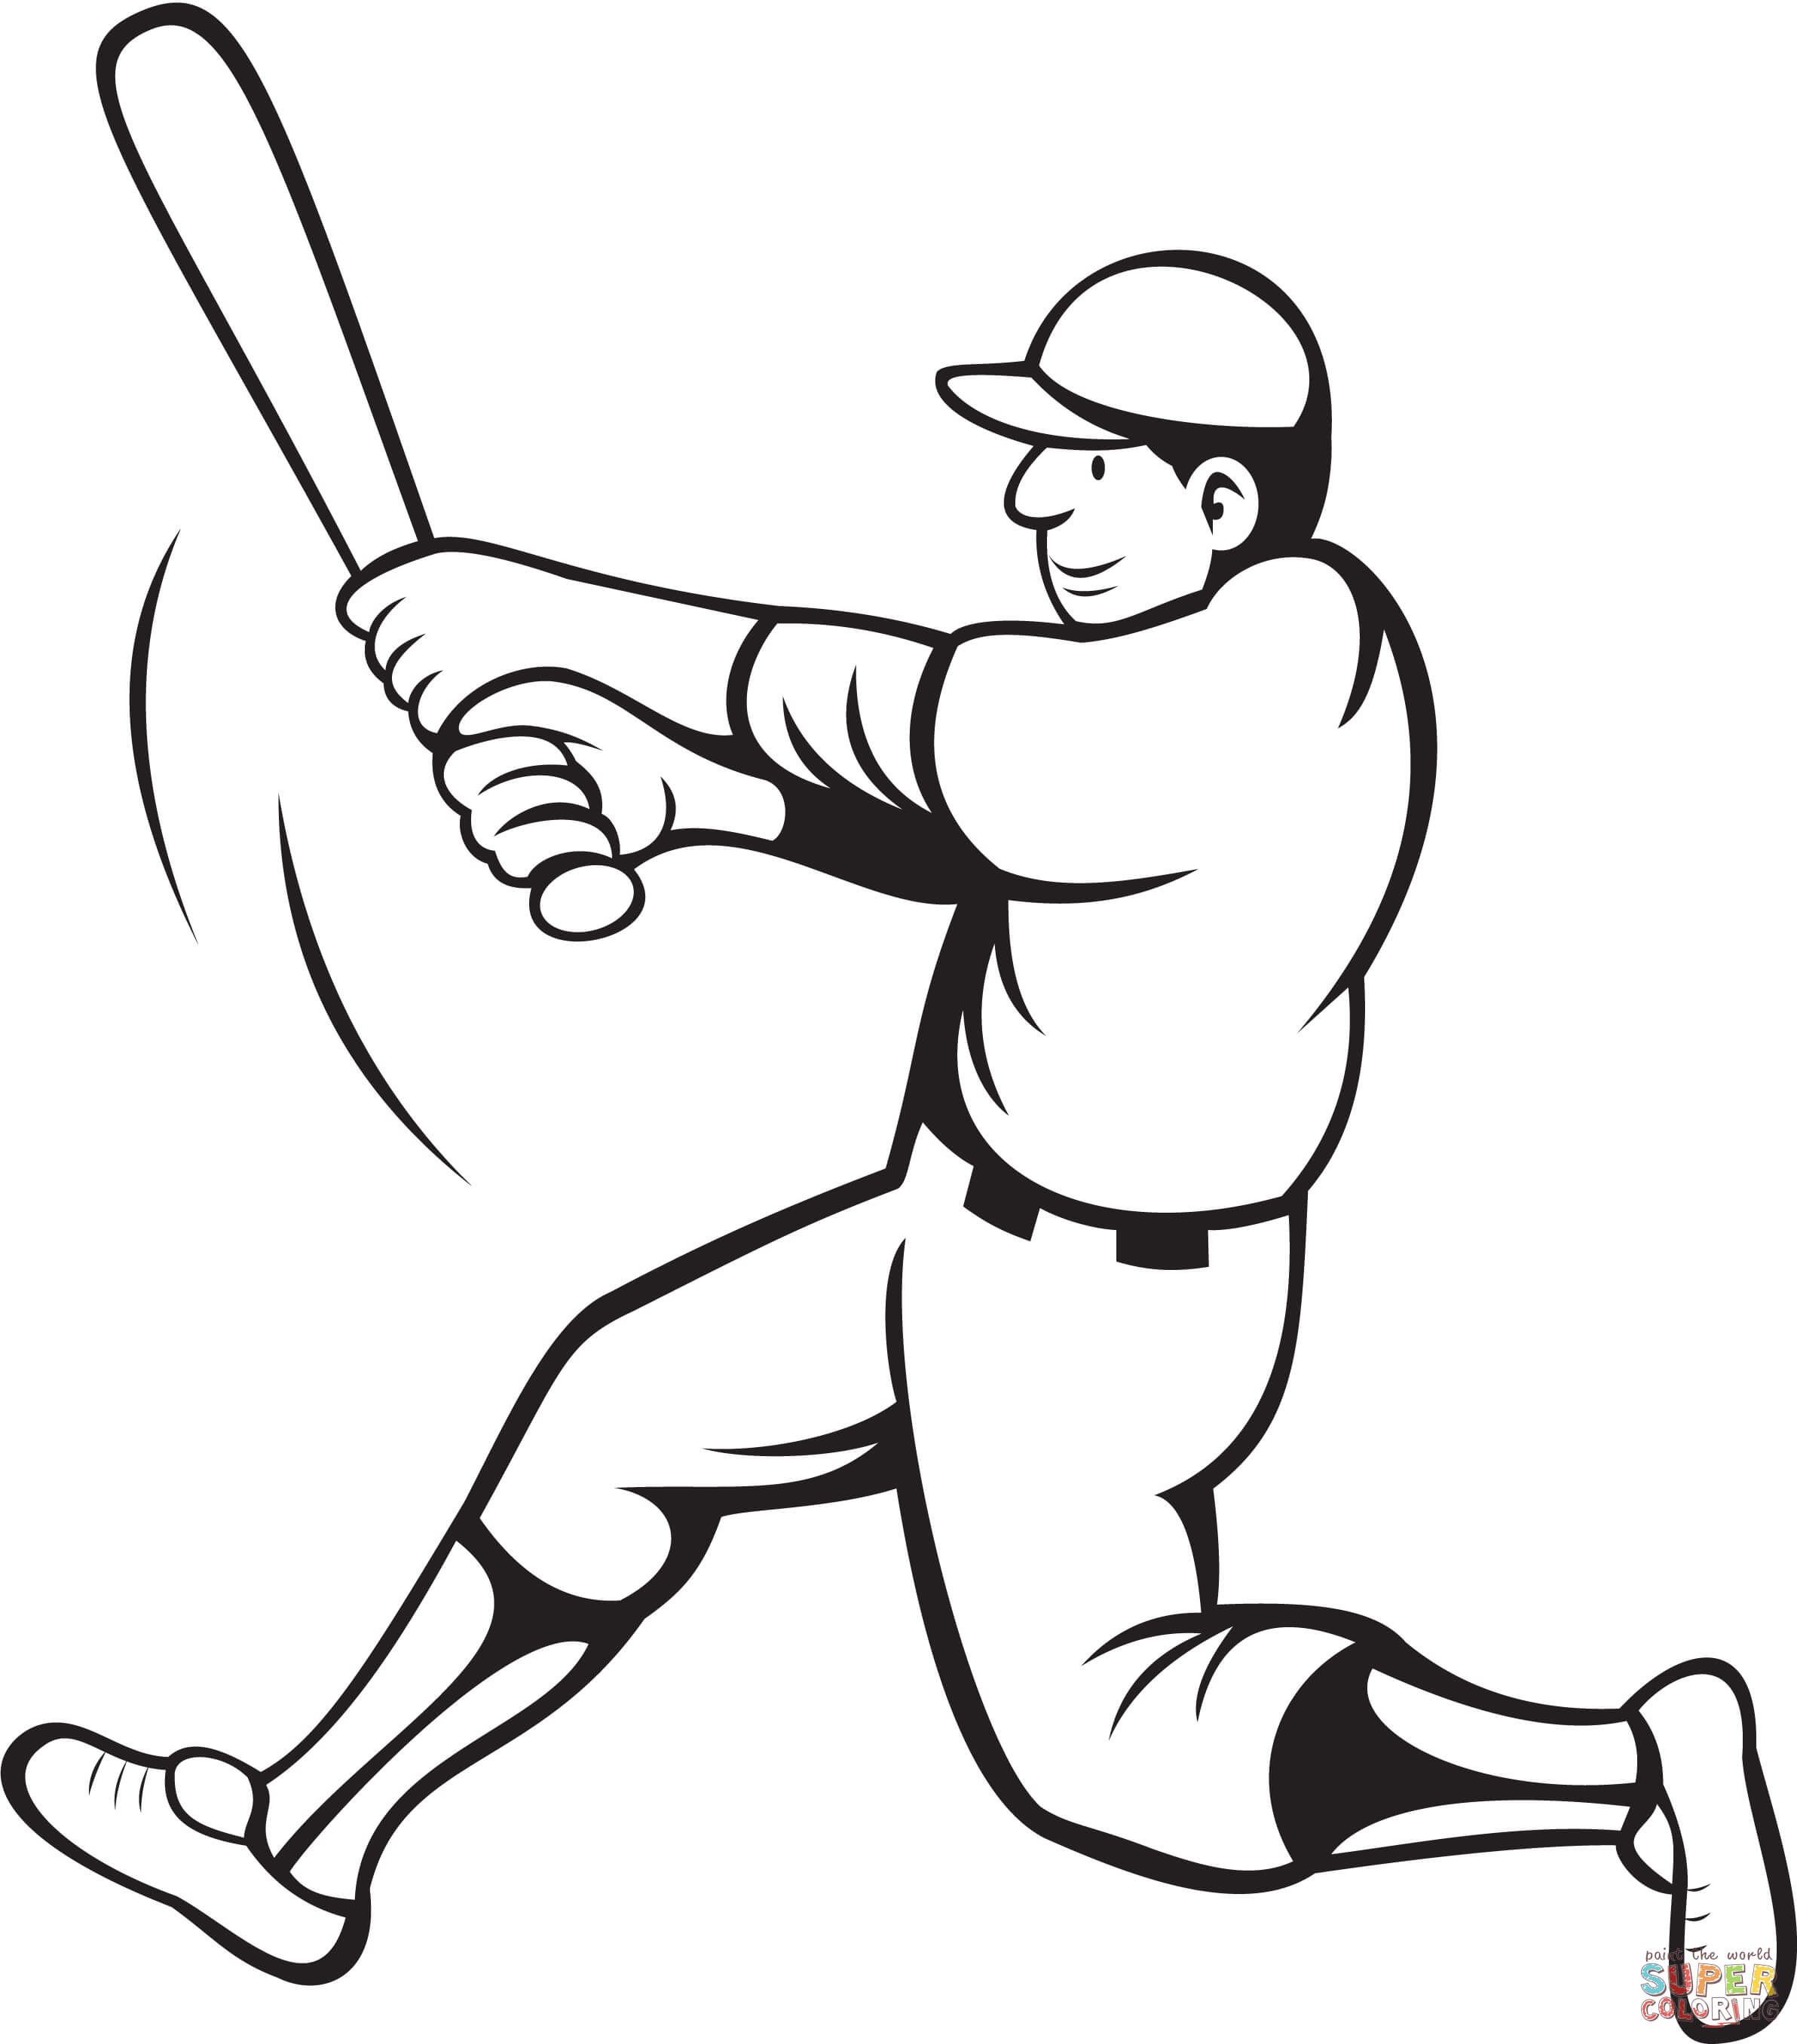 Baseball Batter Swinging Coloring Page